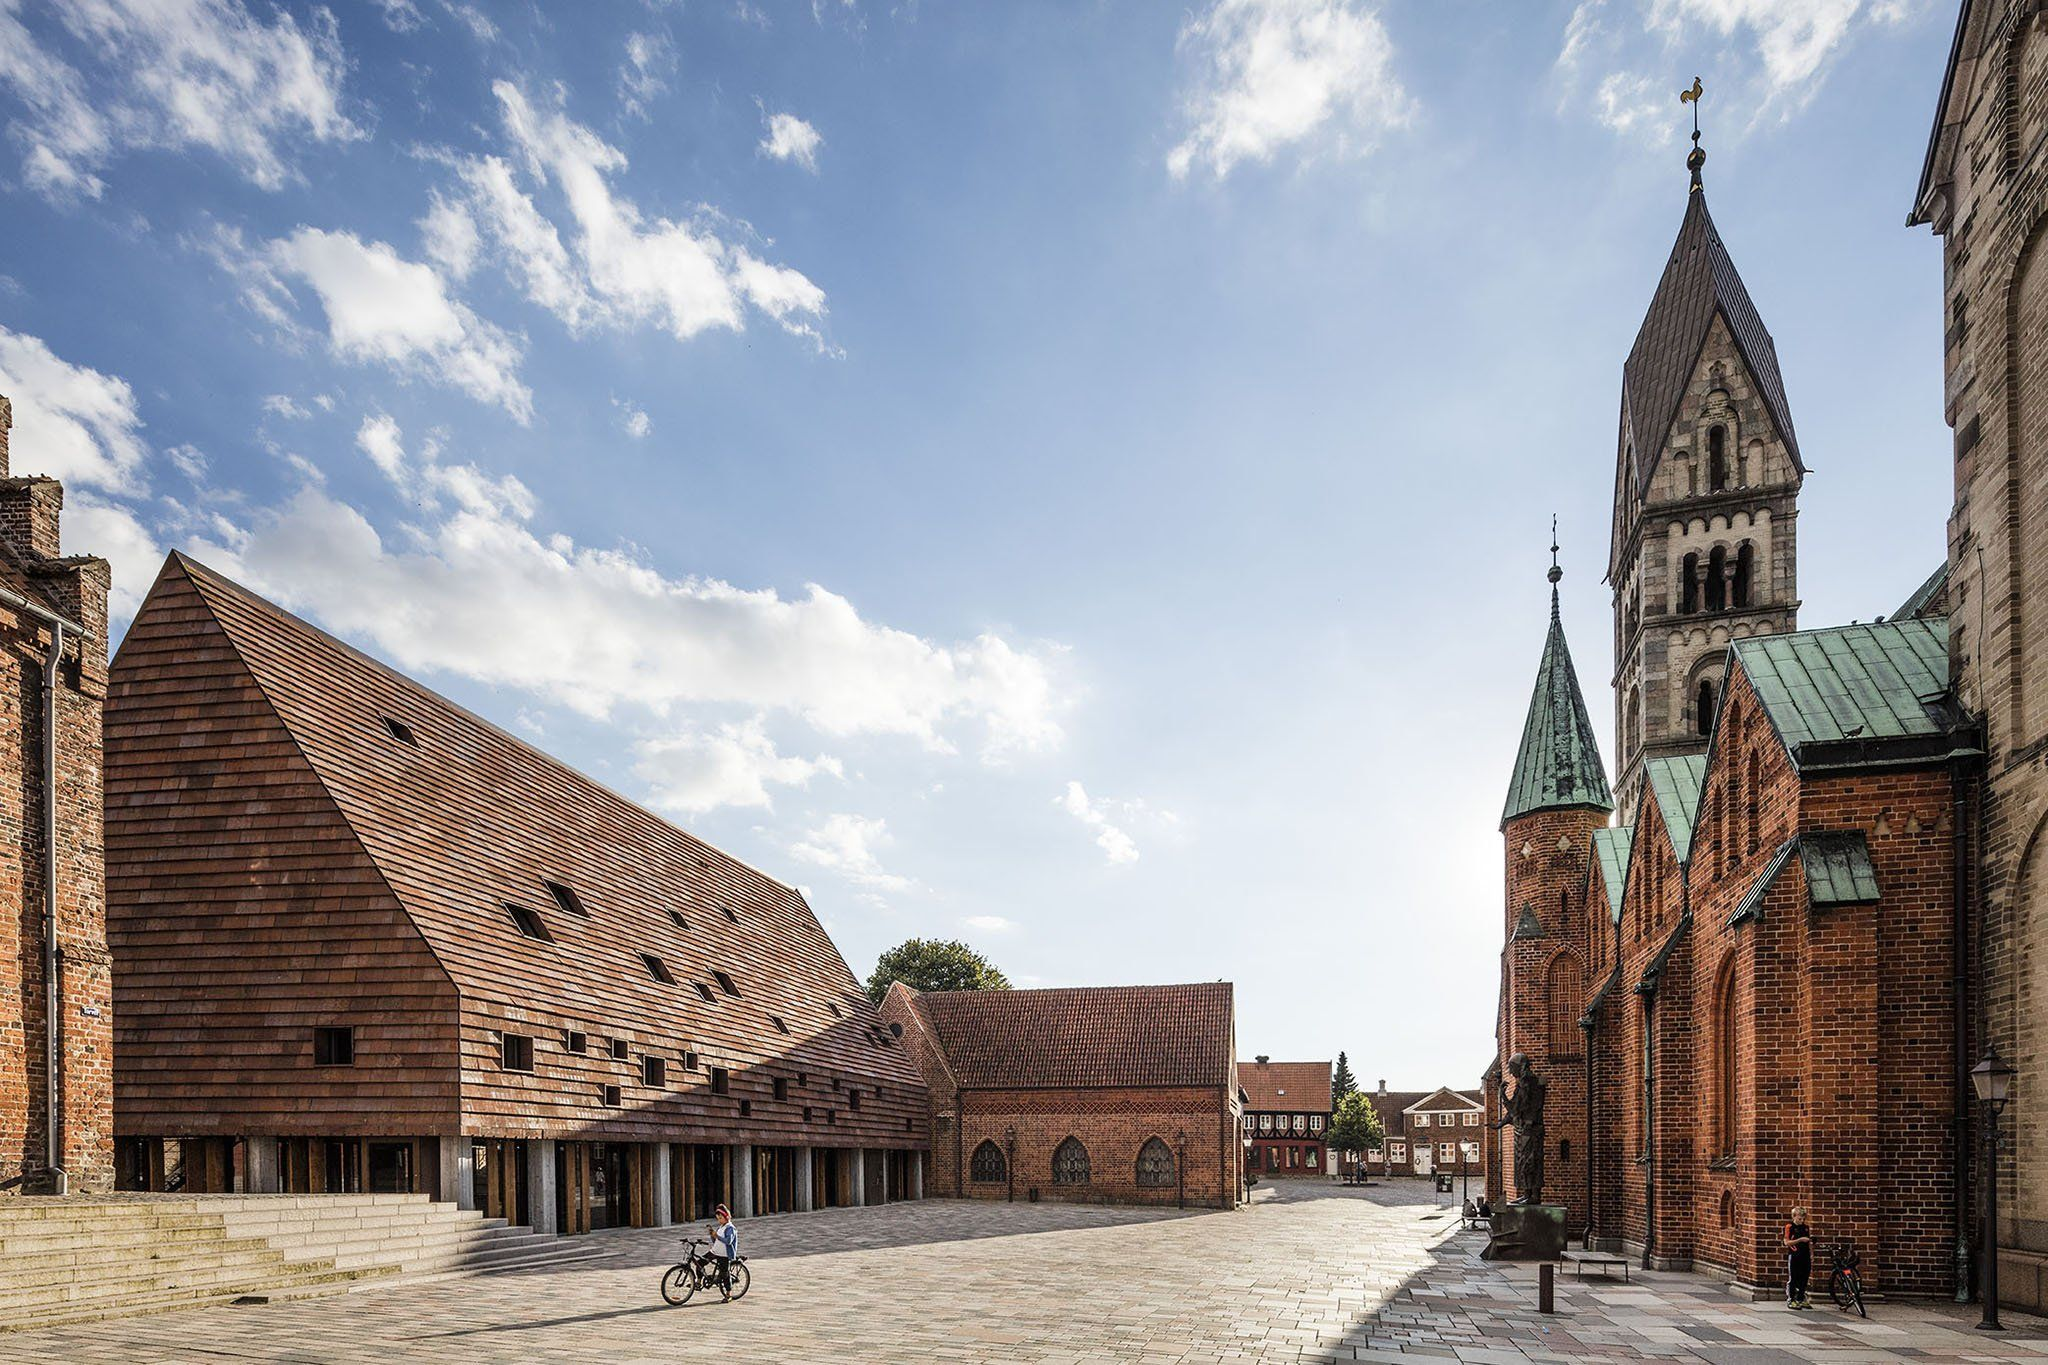 5 finalists. Kannikegården with Ribe Cathedral in foreground. Kannikegården, new church hall by Lundgaard & Tranberg Arkitekter. Image © Anders Sune Berg.